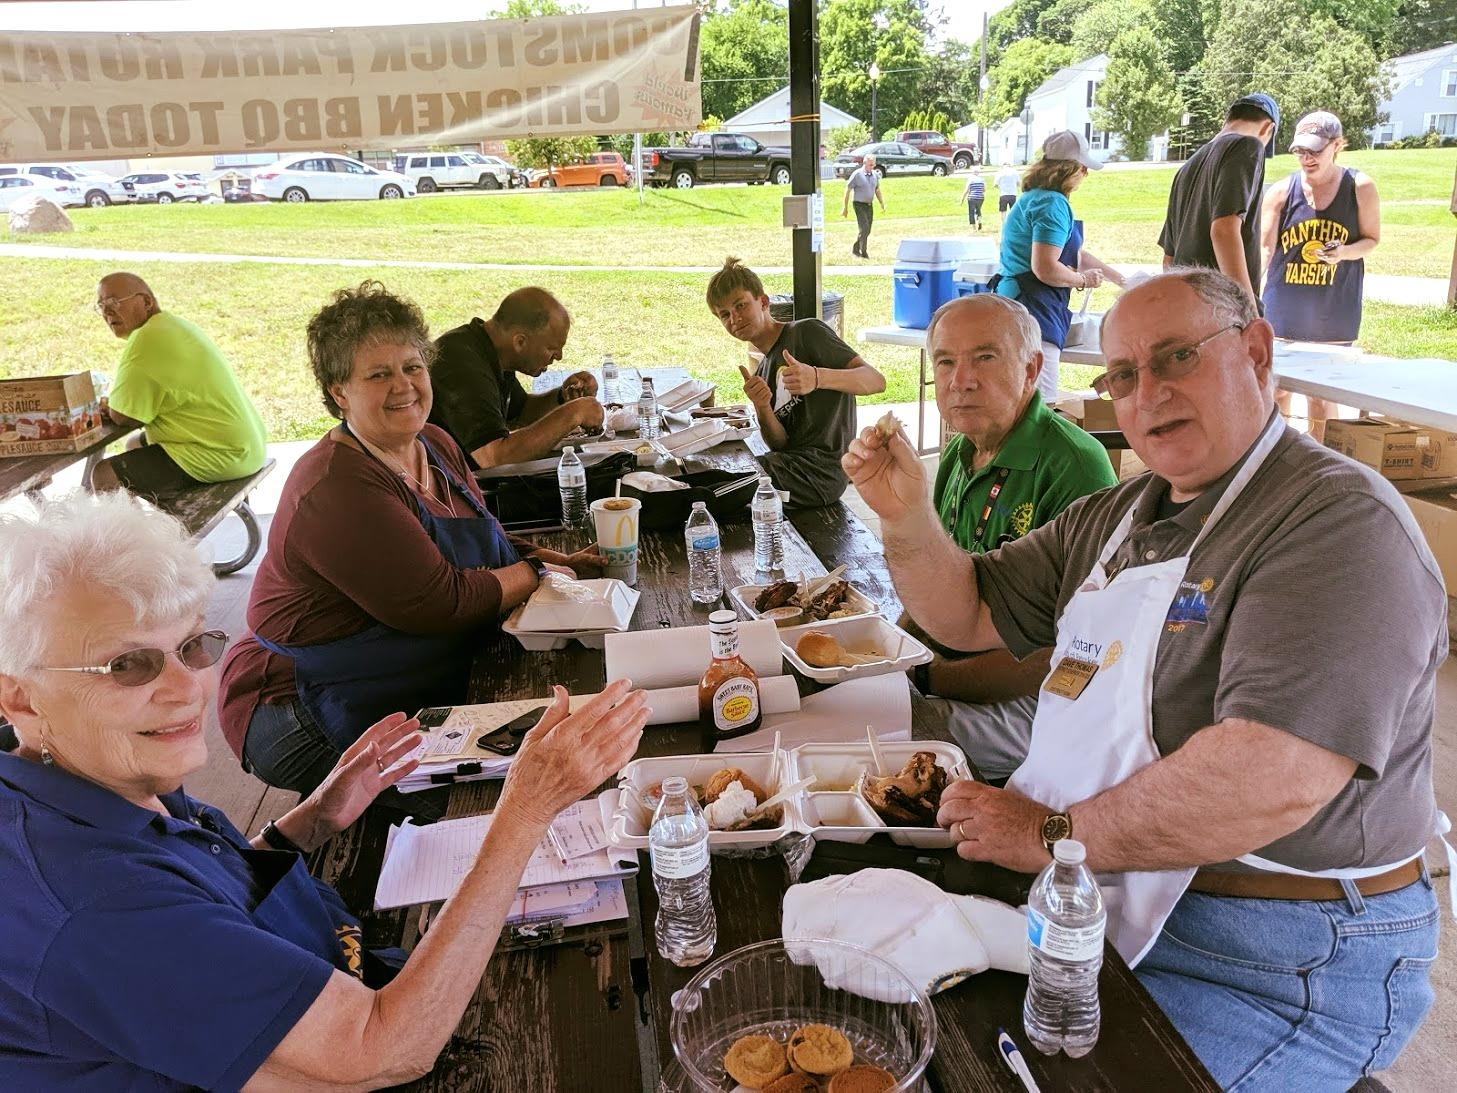 Lunch break for Sharon Steffens, President Cindy Witke, Governor Dave Thomas and Assistant Governor Jim White